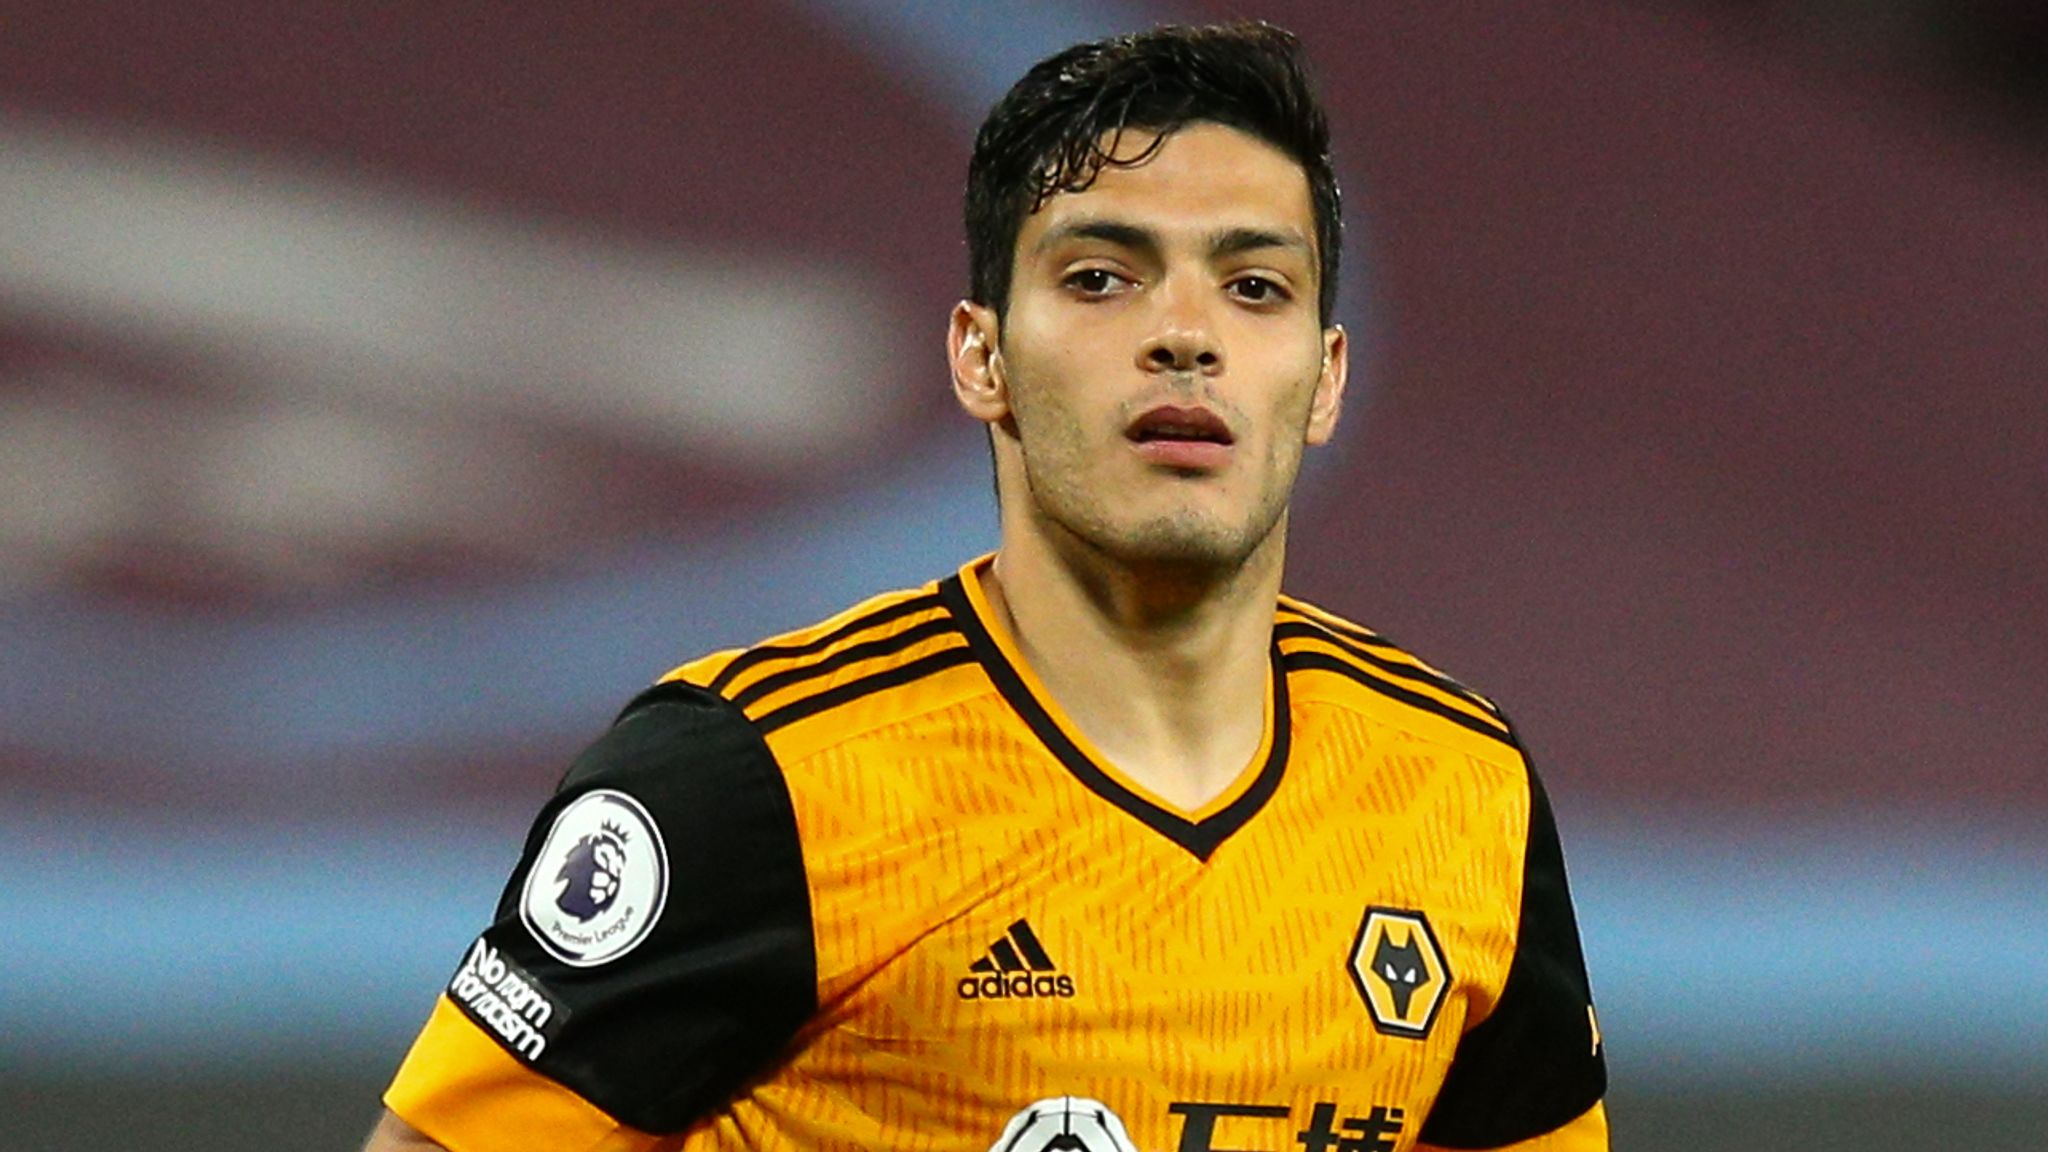 Wolves striker Raul Jimenez thankful for support during skull fracture recovery